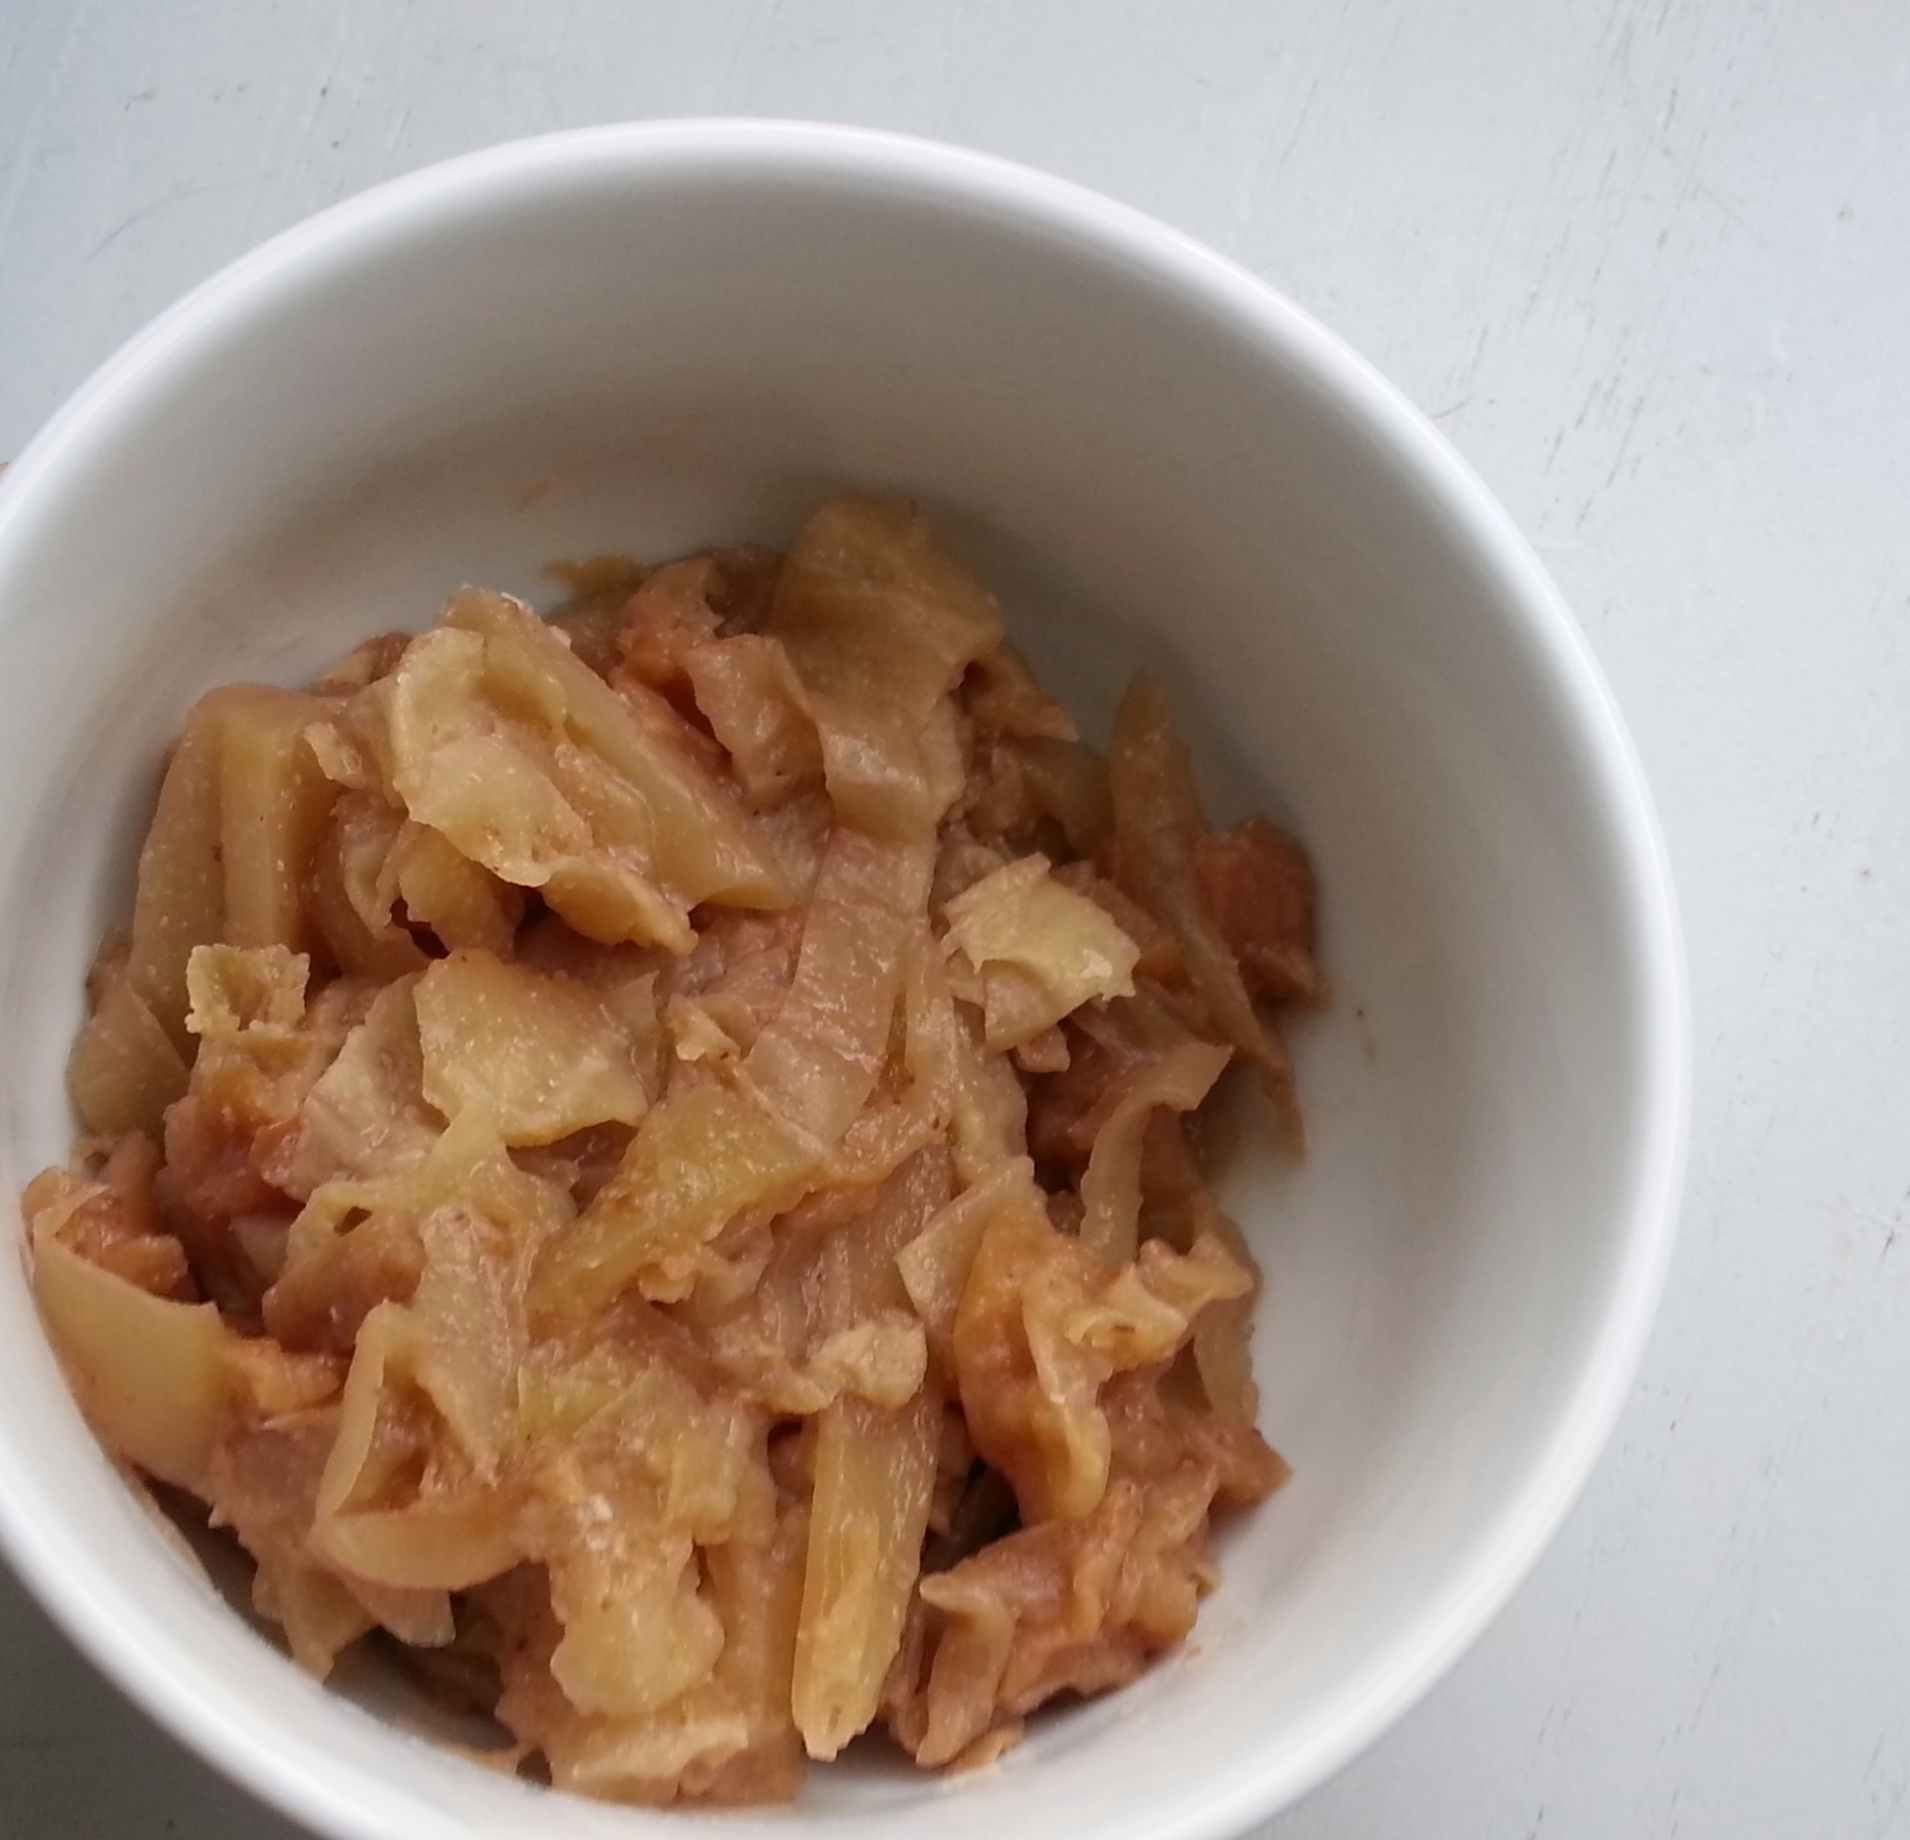 Recipe: Slow cooker cabbage and apples (plus how to cut onions without crying)